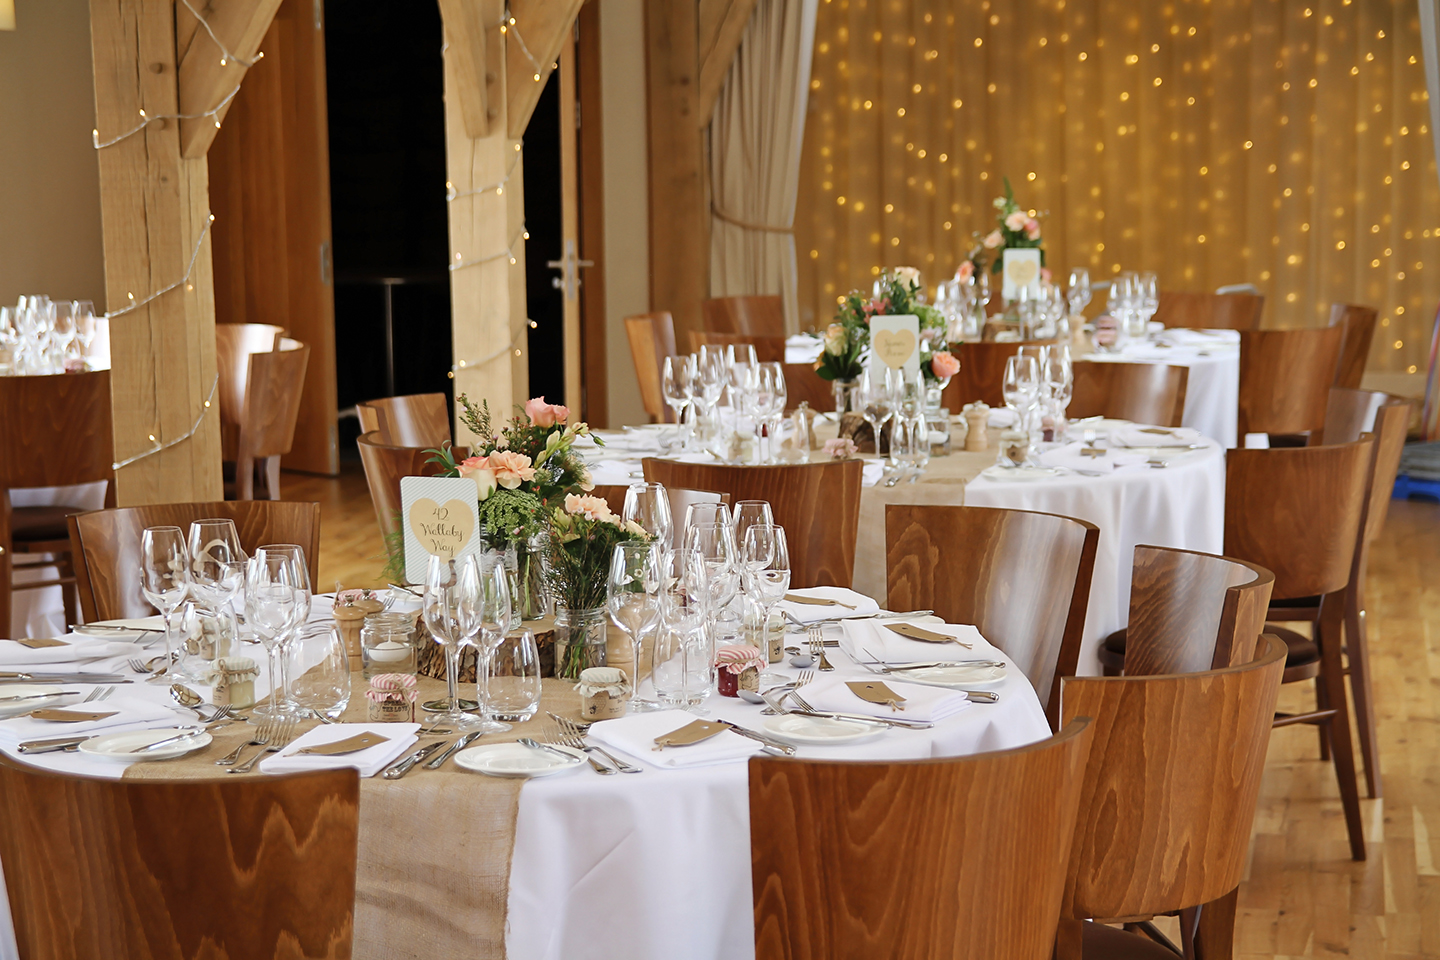 The Bridge Barn at Bassmead Manor Barns is set up for a rustic wedding breakfast